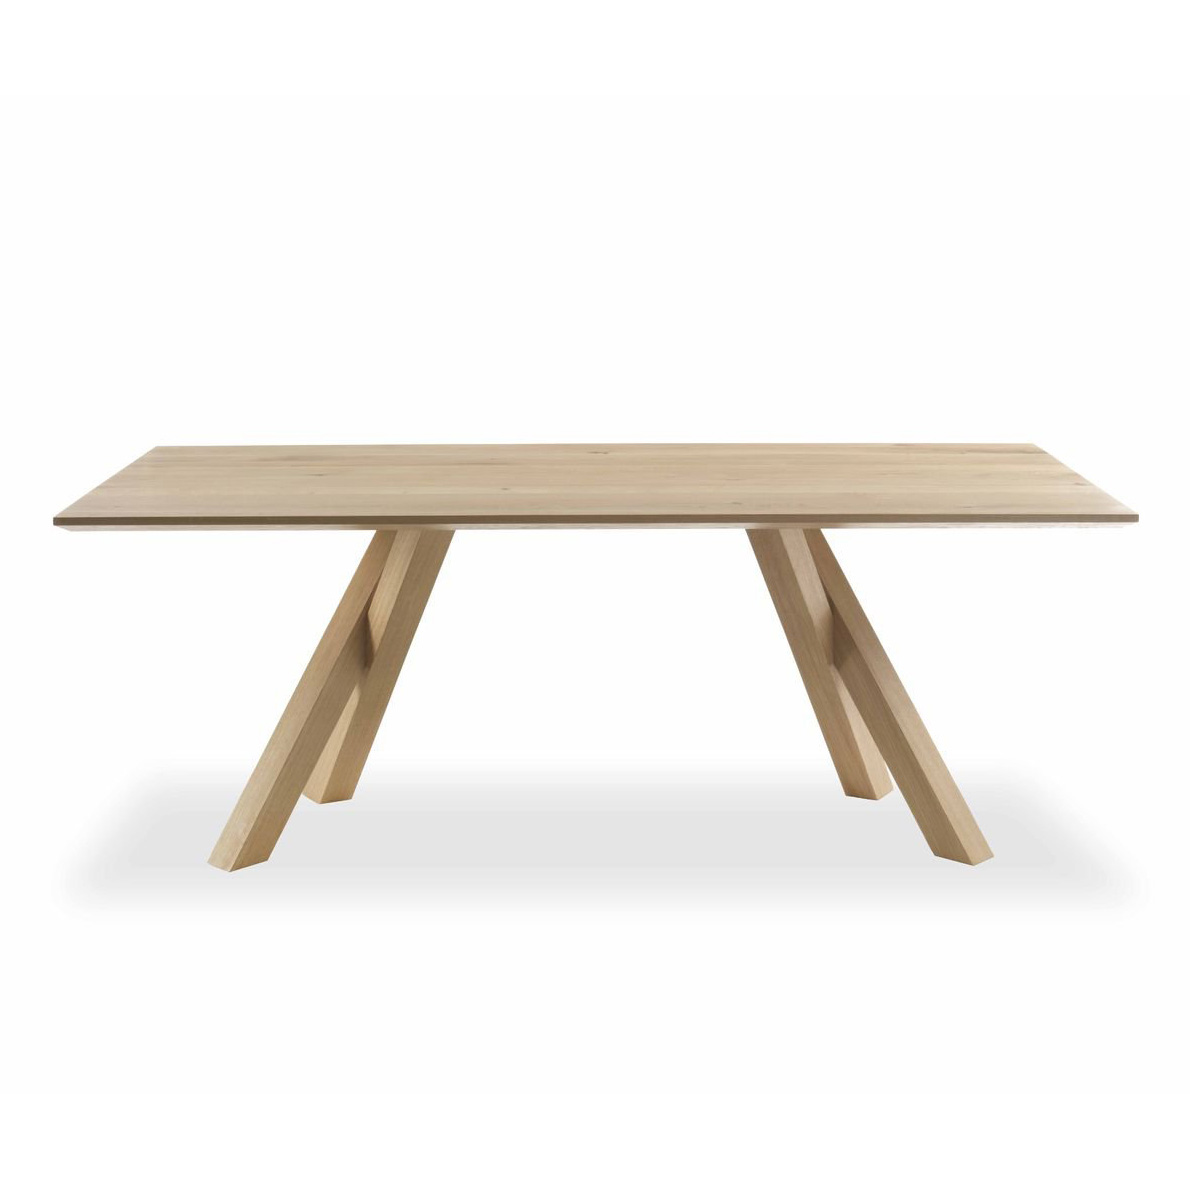 Snap dining table from Riva 1920